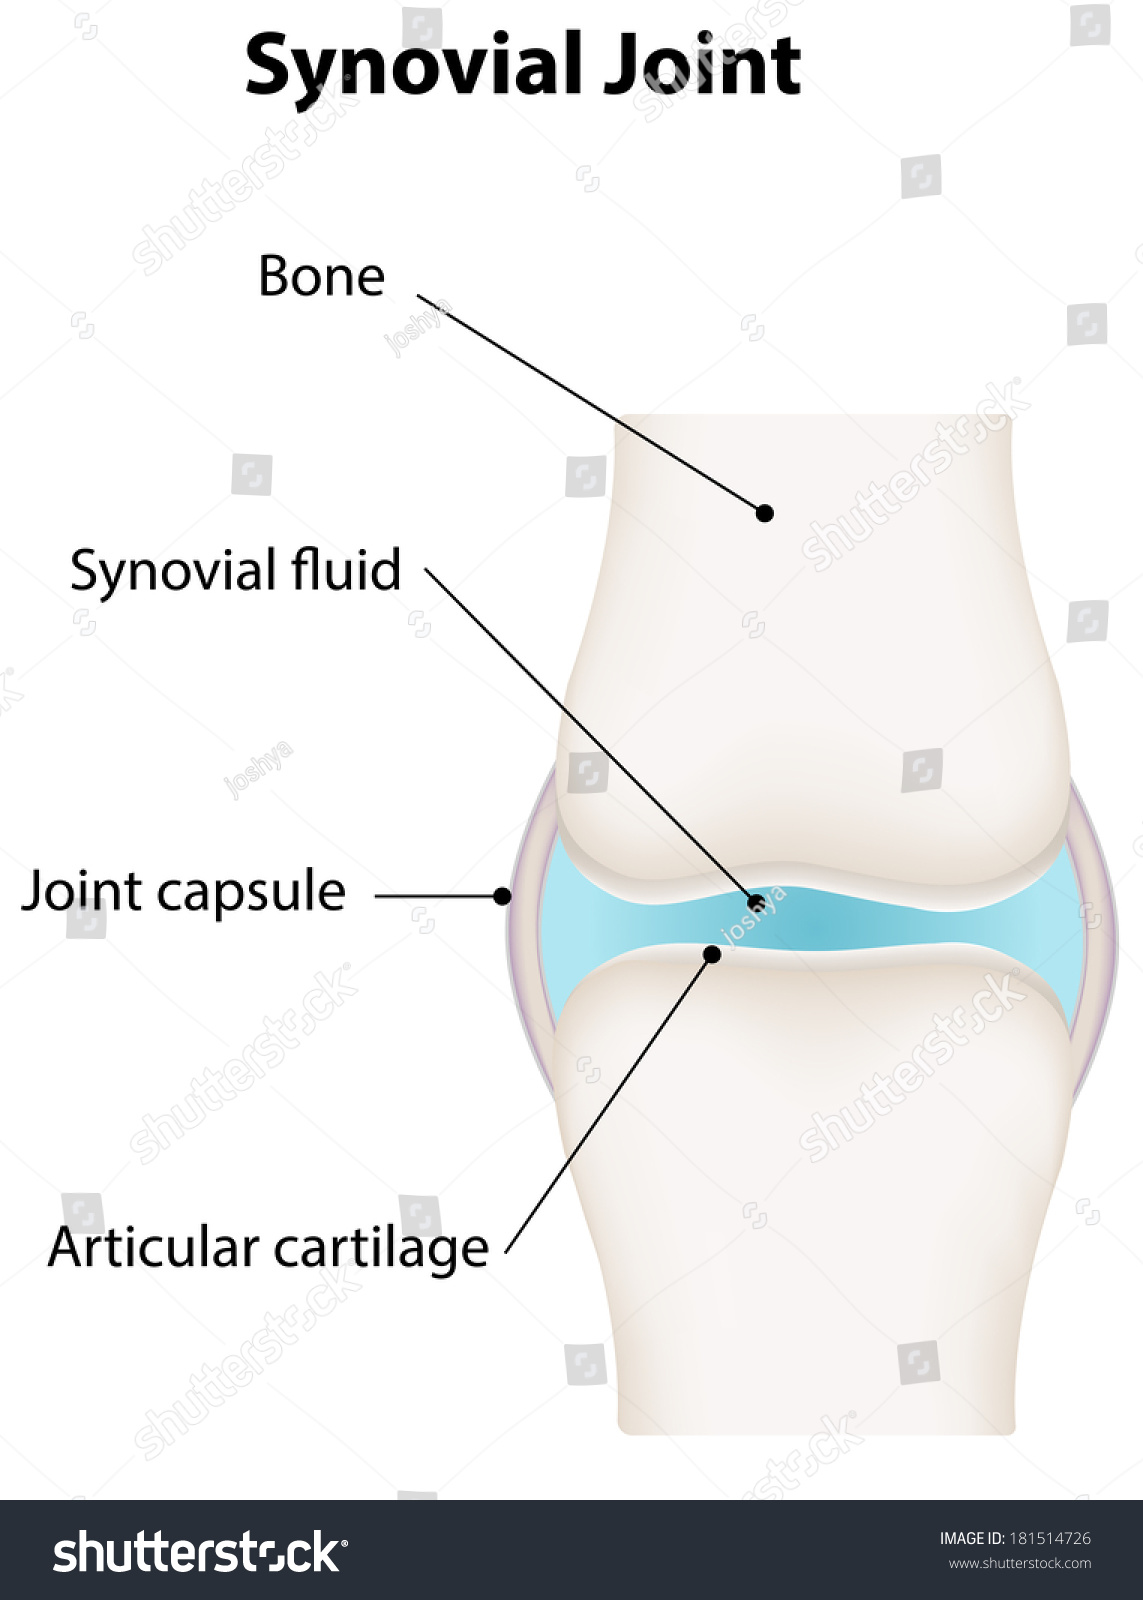 hight resolution of synovial joint diagram